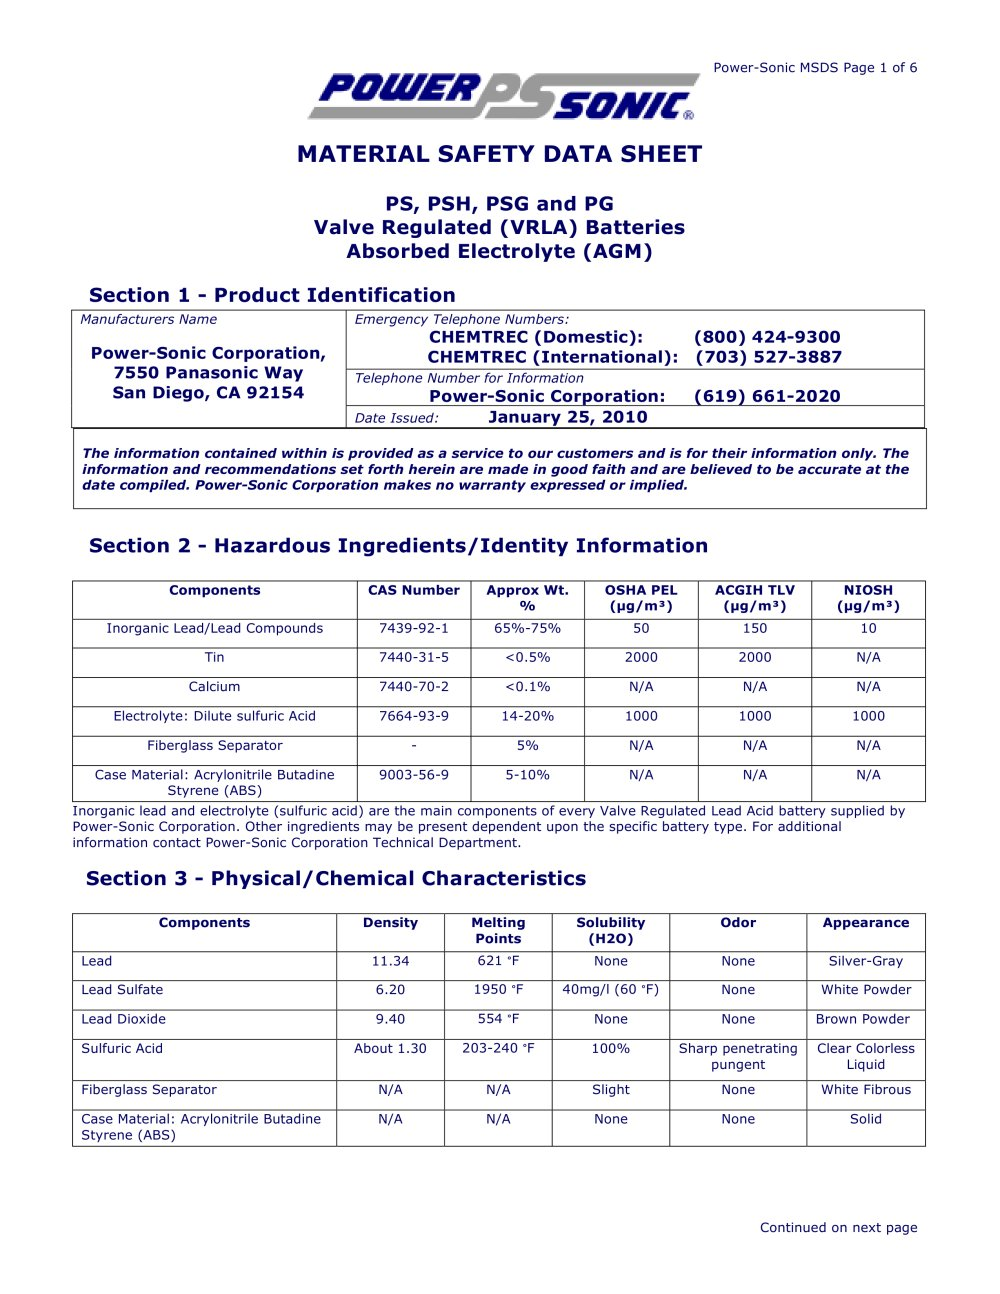 Material Safety Data Sheet Sealed Lead Acid Batteries (MSDS